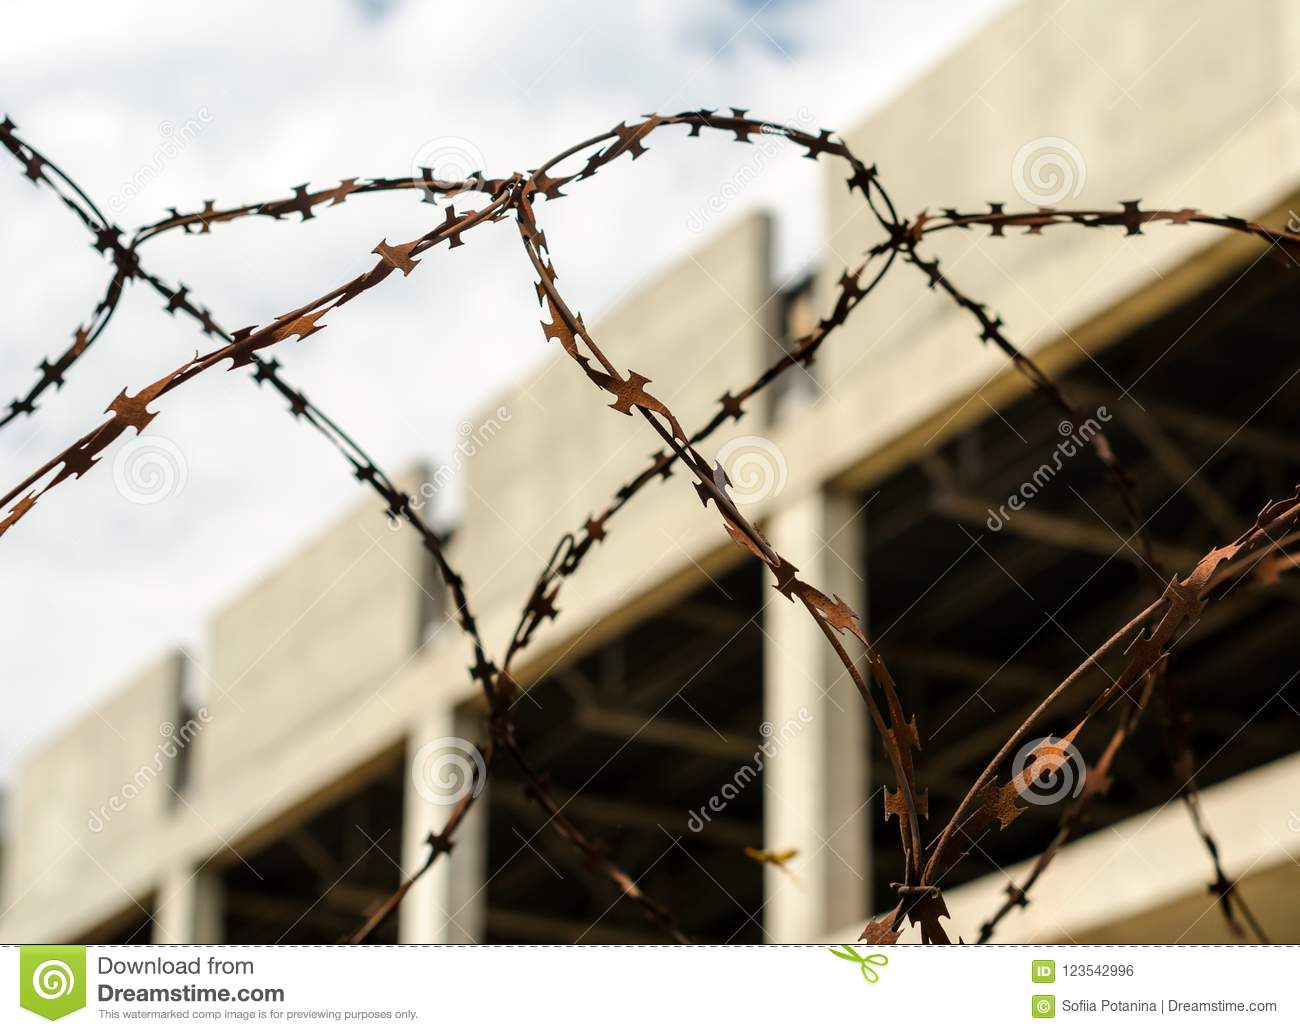 Rusty Barbed Wire Fence Against The Backdrop Of An Abandoned Bui ...